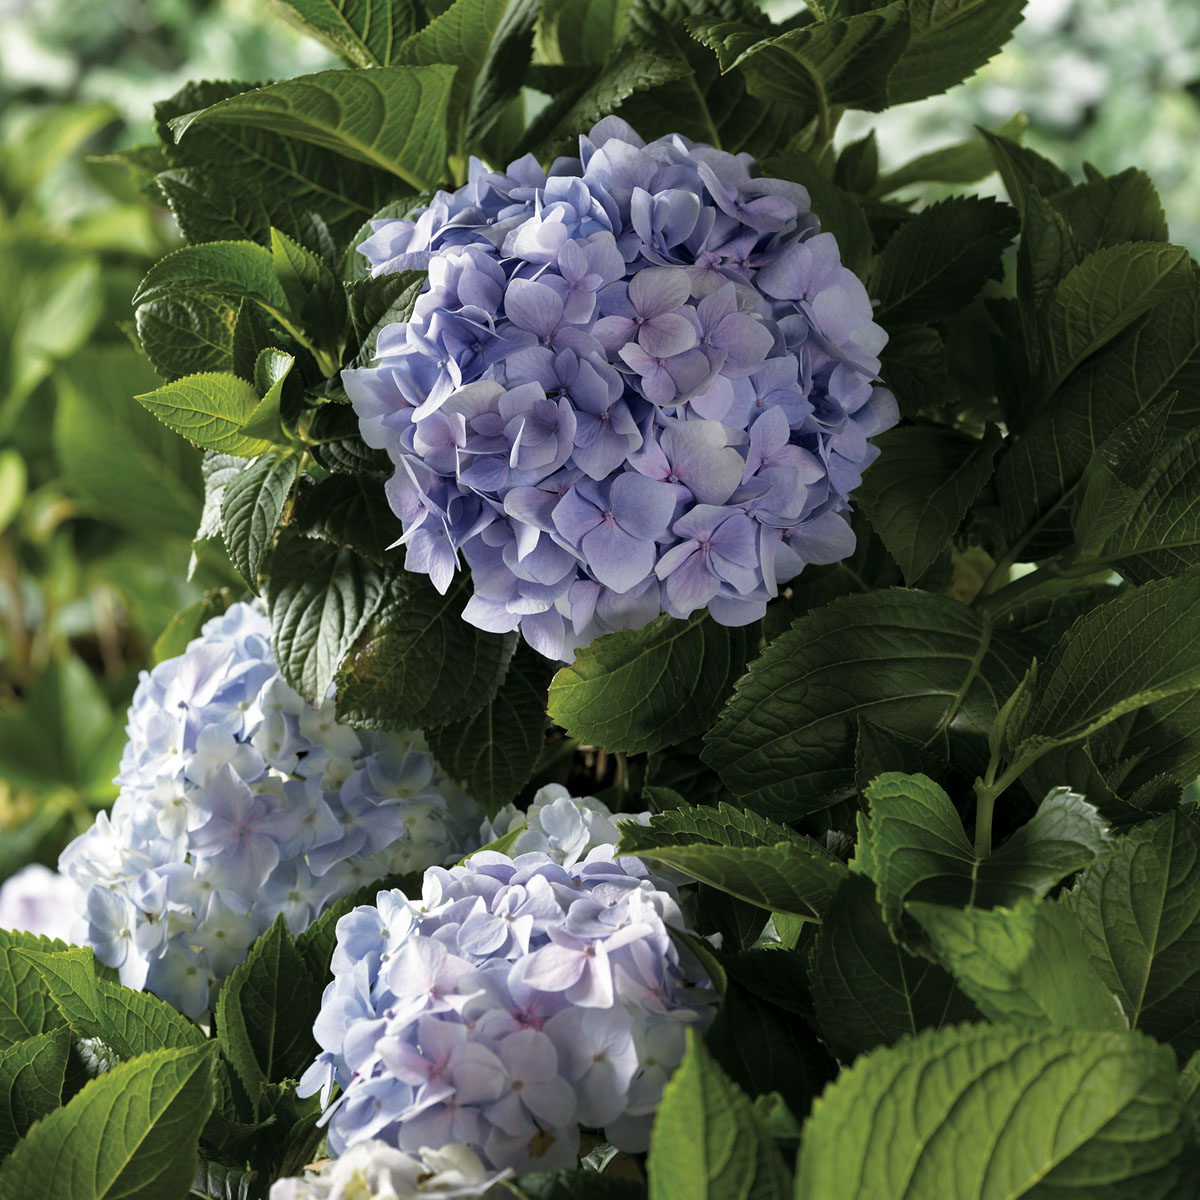 La collection globe planter hortensia grandes feuilles france bleu - Ou planter un hortensia ...